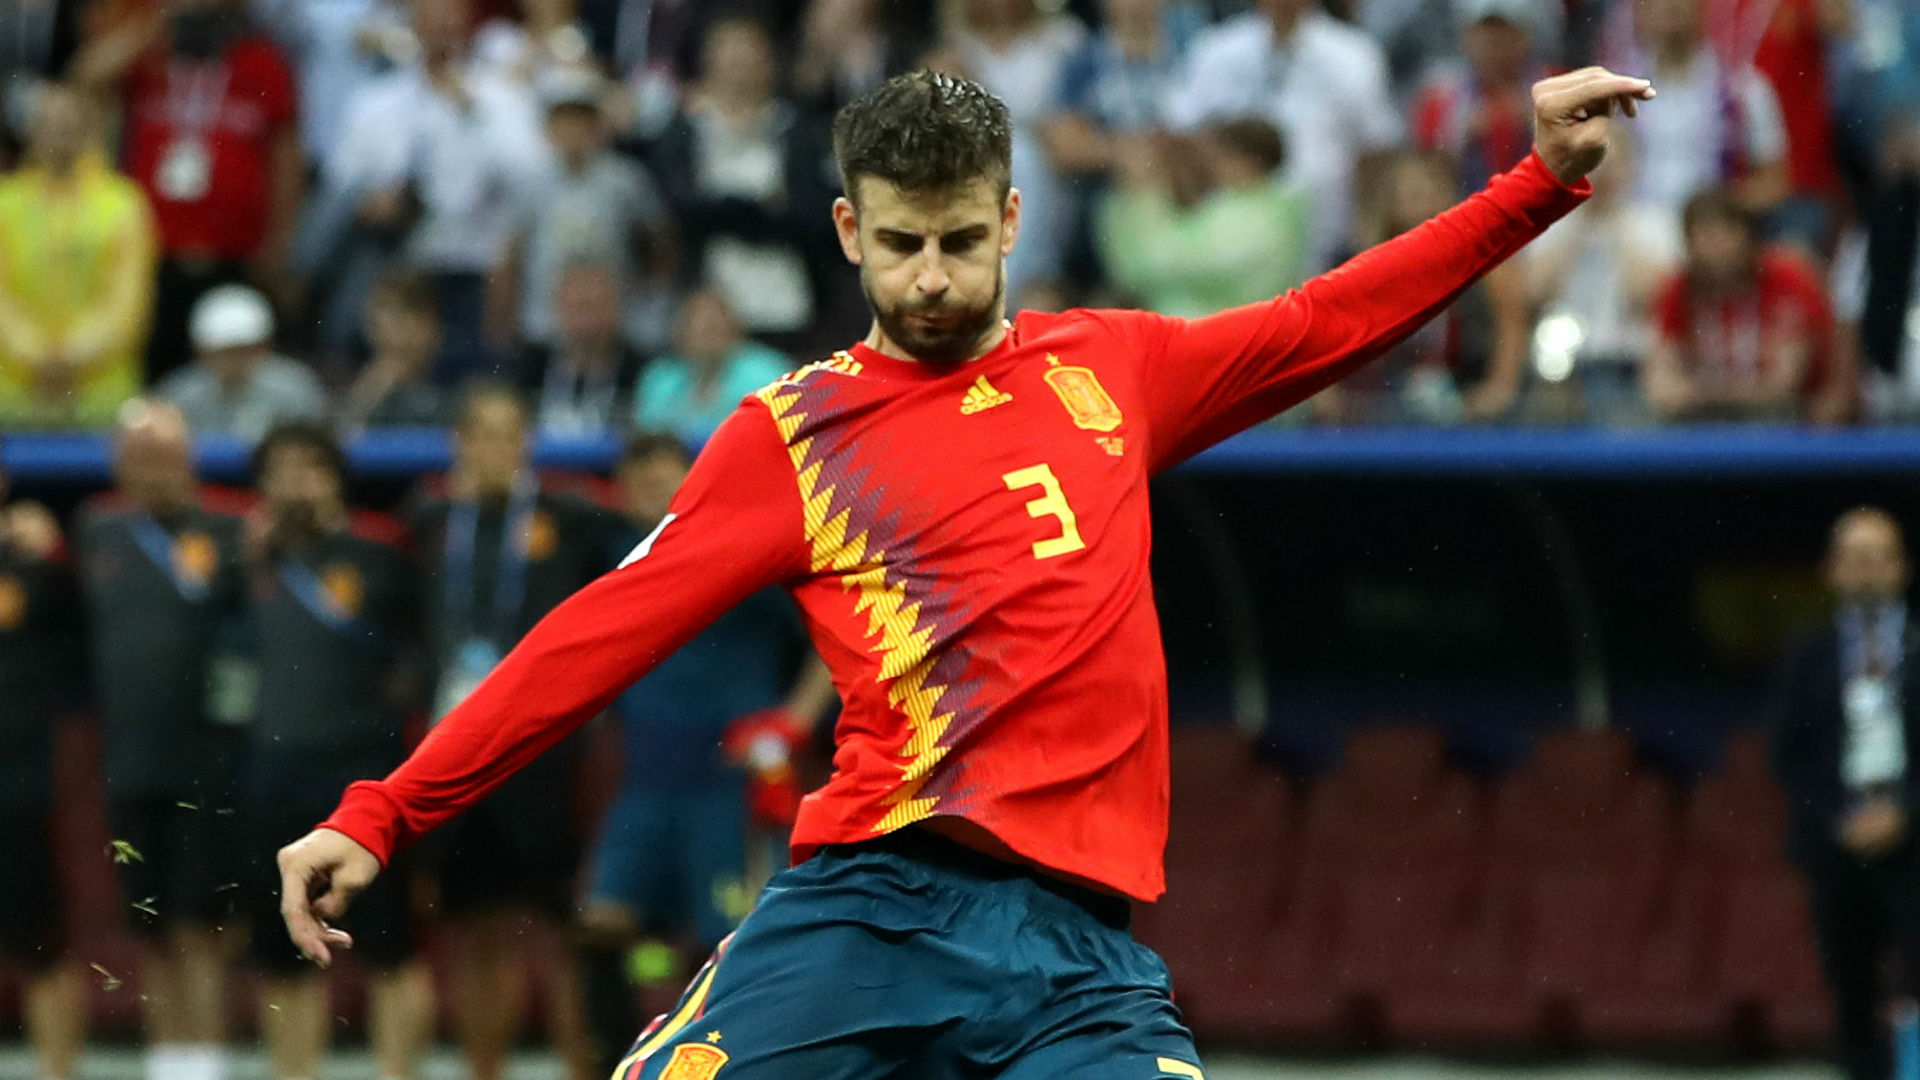 Barcelona star Pique open to joining Ramos in Spain's Olympic team